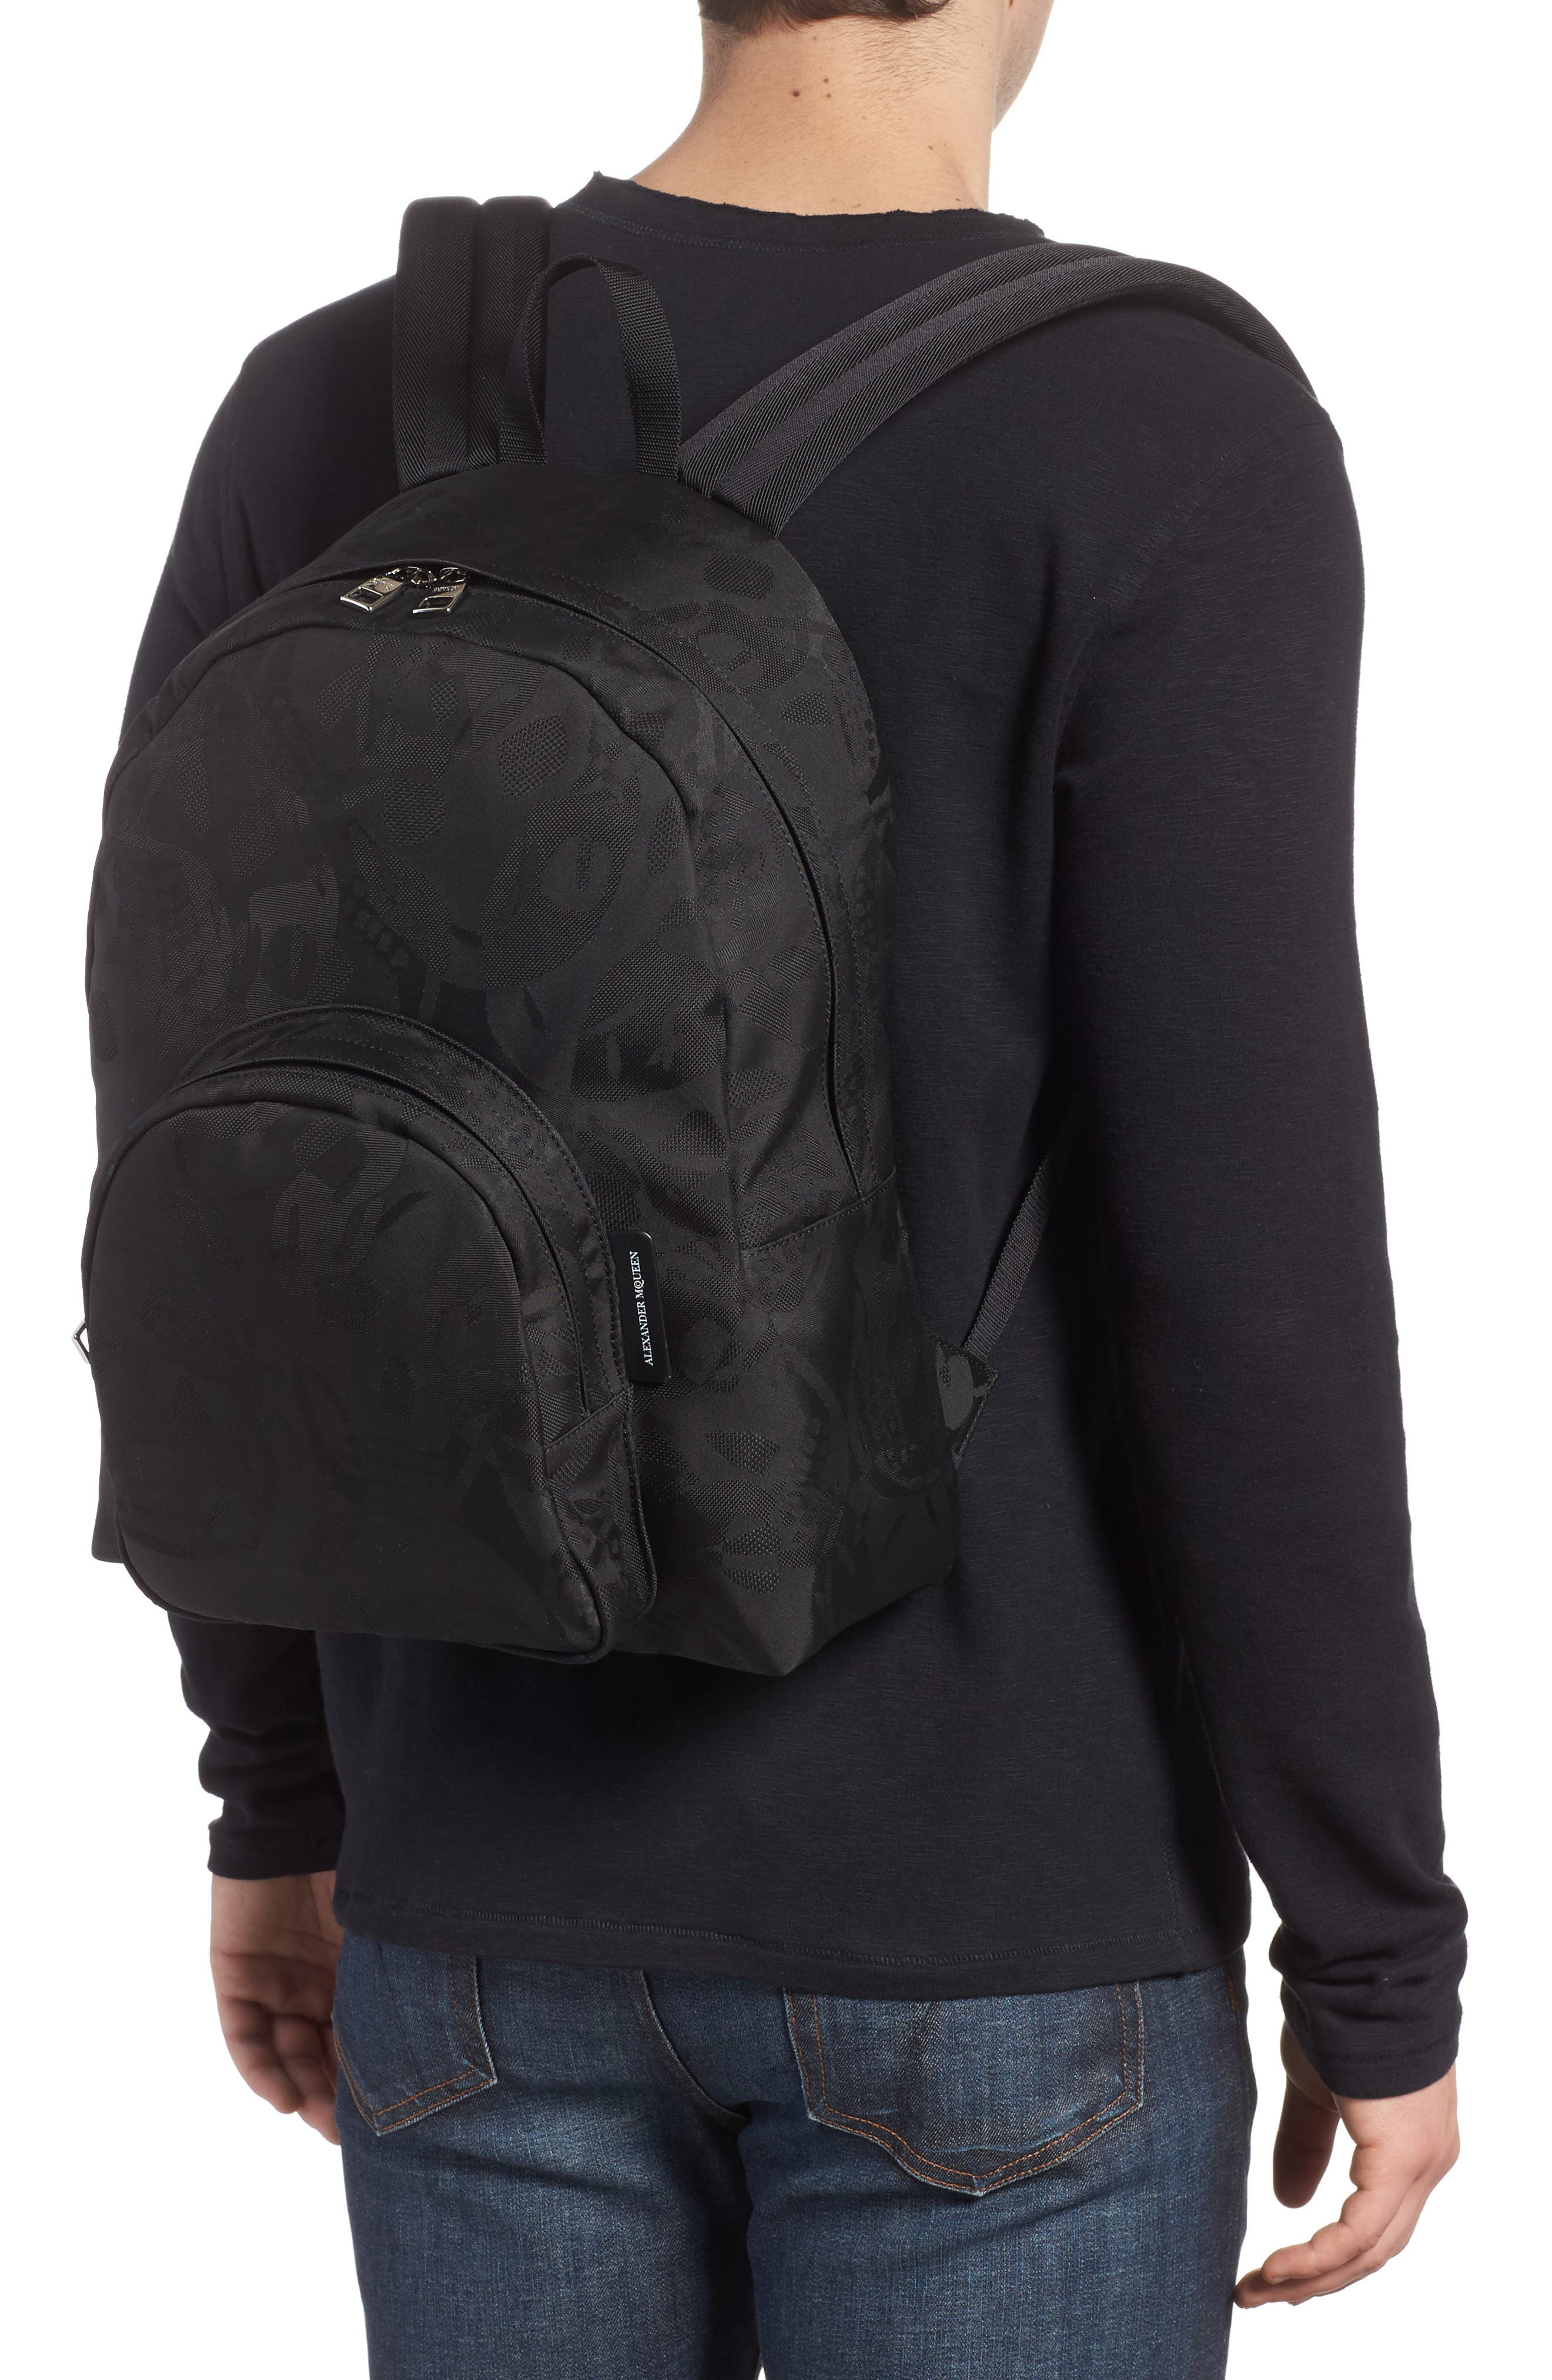 Small Backpack,                             Alternate thumbnail 2, color,                             001